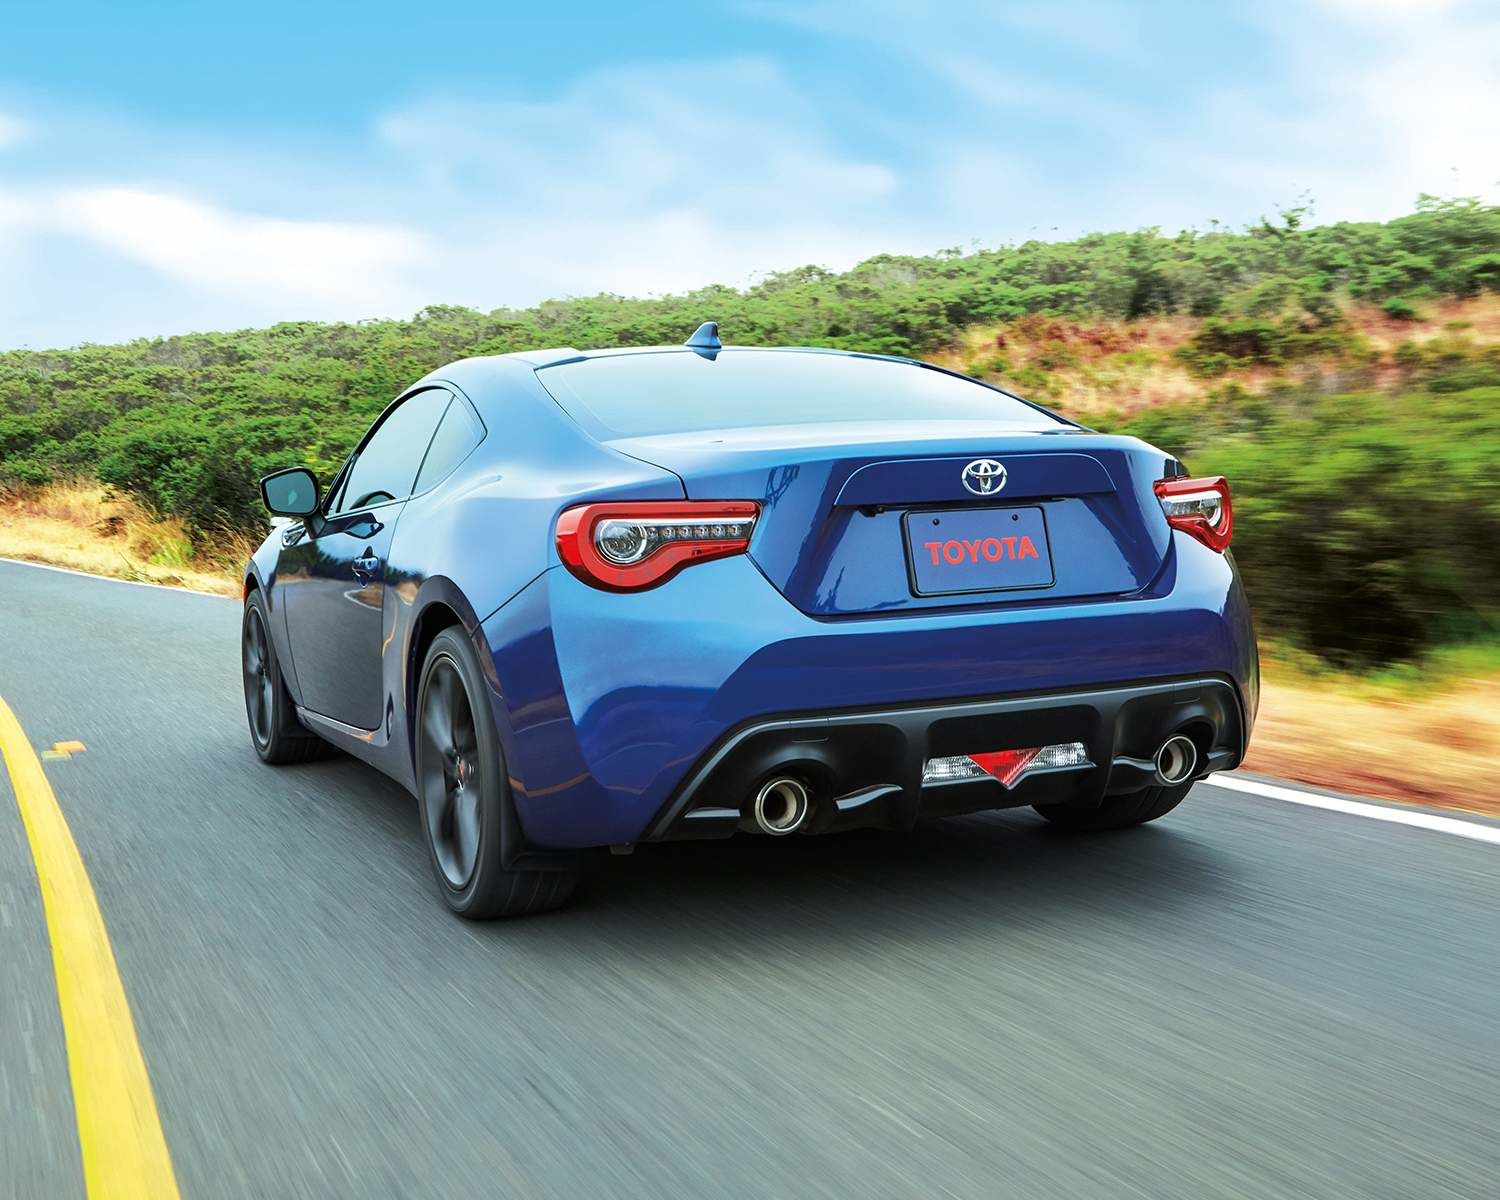 Toyota 86 shown in Oceanic